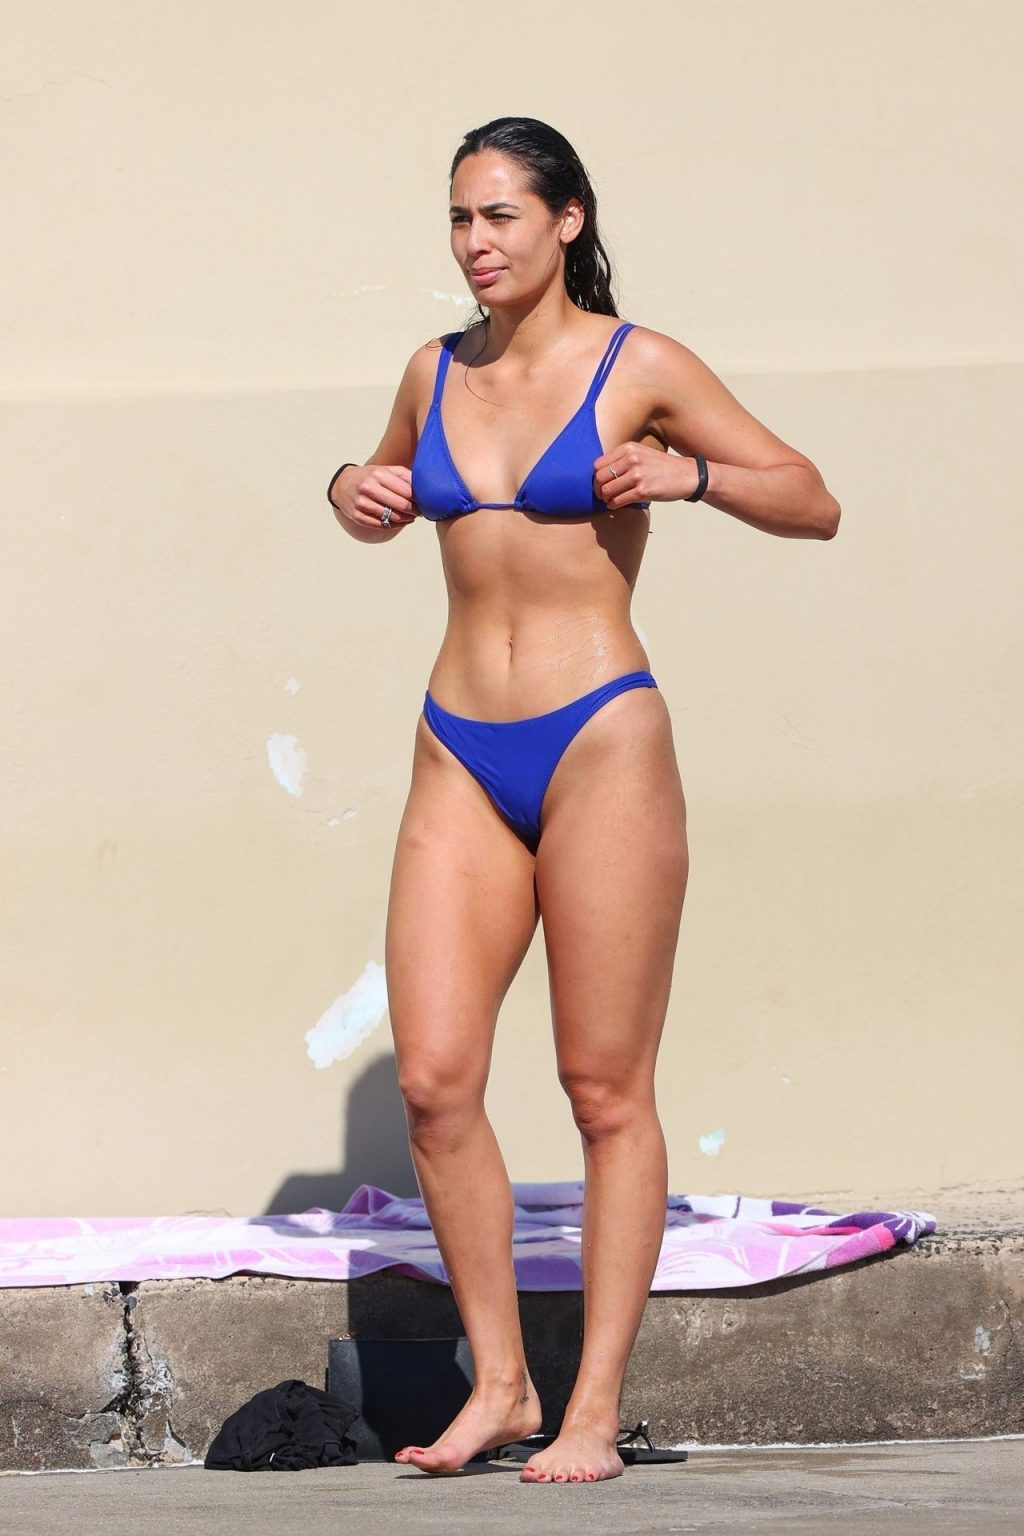 Leilani Vakaahi Shows Off Her Curvaceous Figure at a Beach in Sydney (50 Photos)